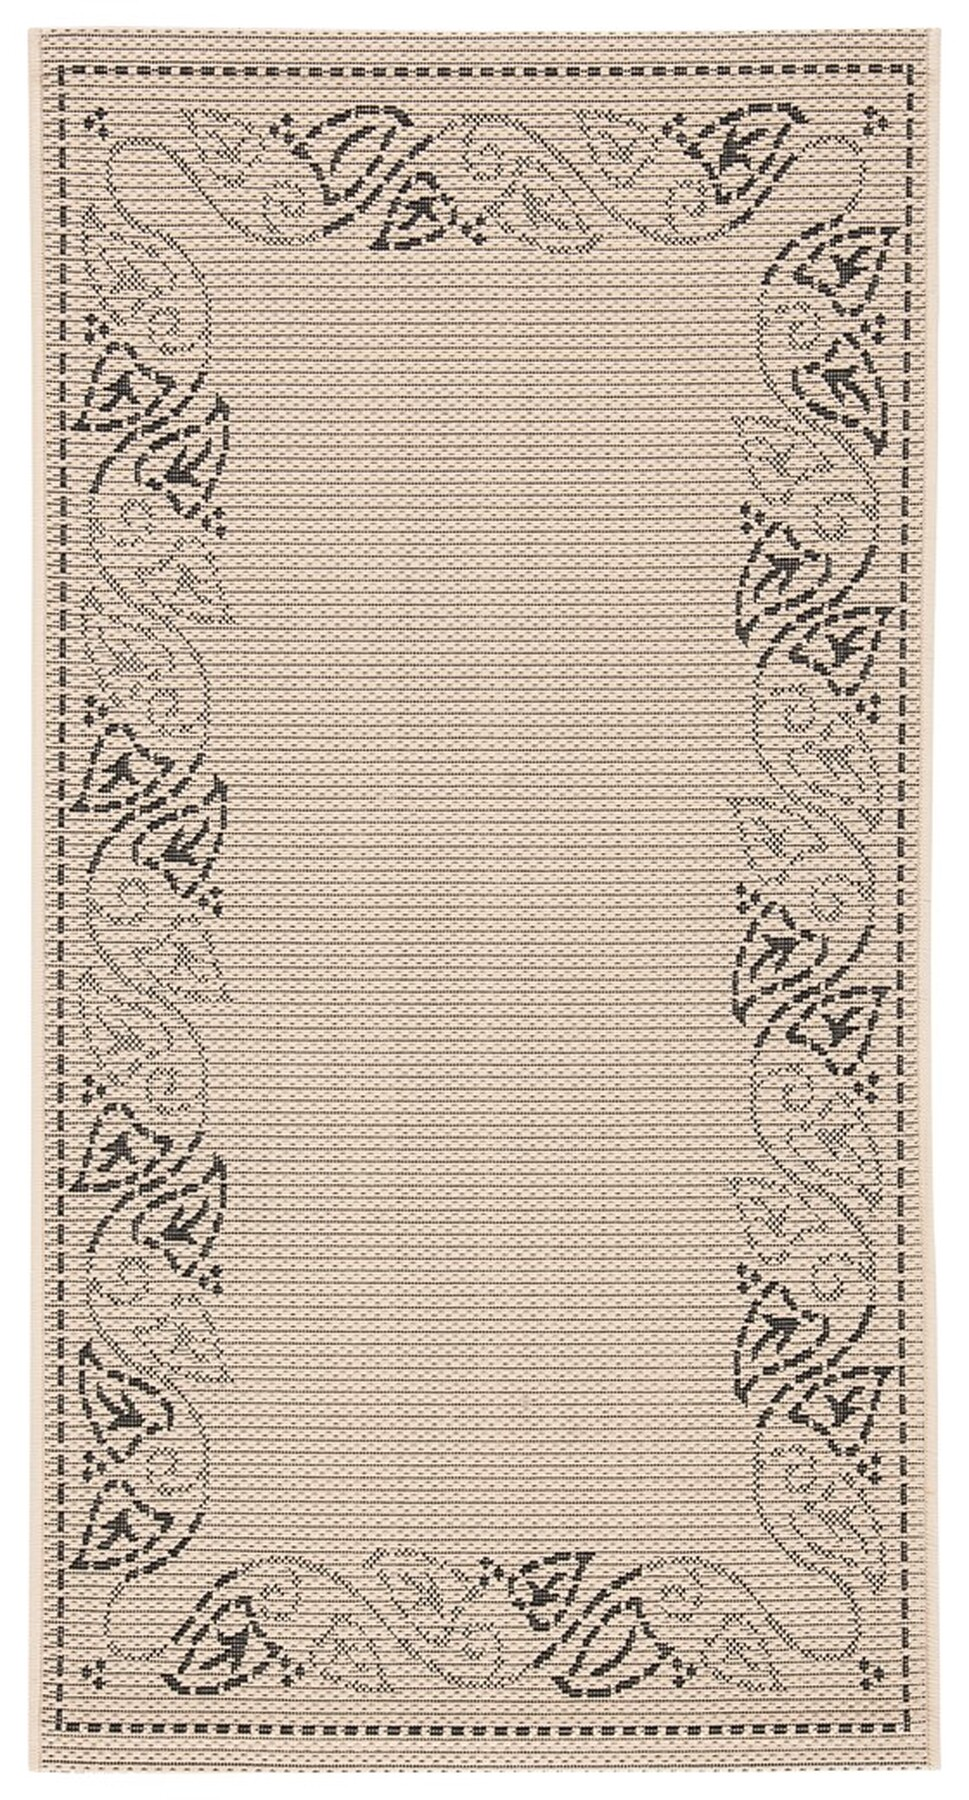 safavieh scroll rug safavieh acanthus scroll rug www. Black Bedroom Furniture Sets. Home Design Ideas